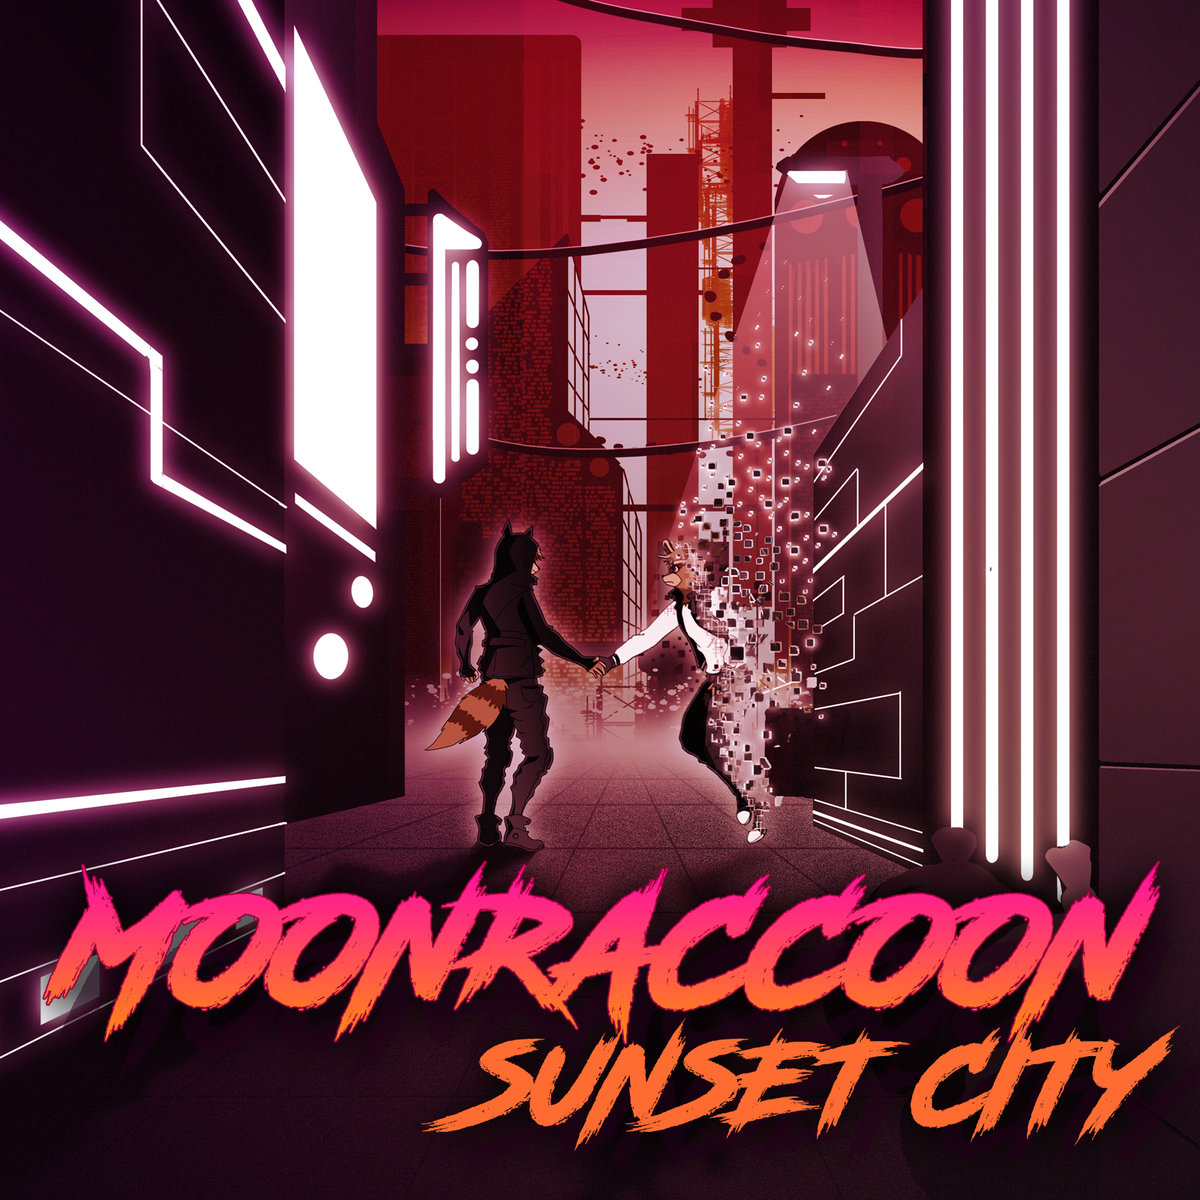 MoonraccoonSunset City-Moonraccoon-Art